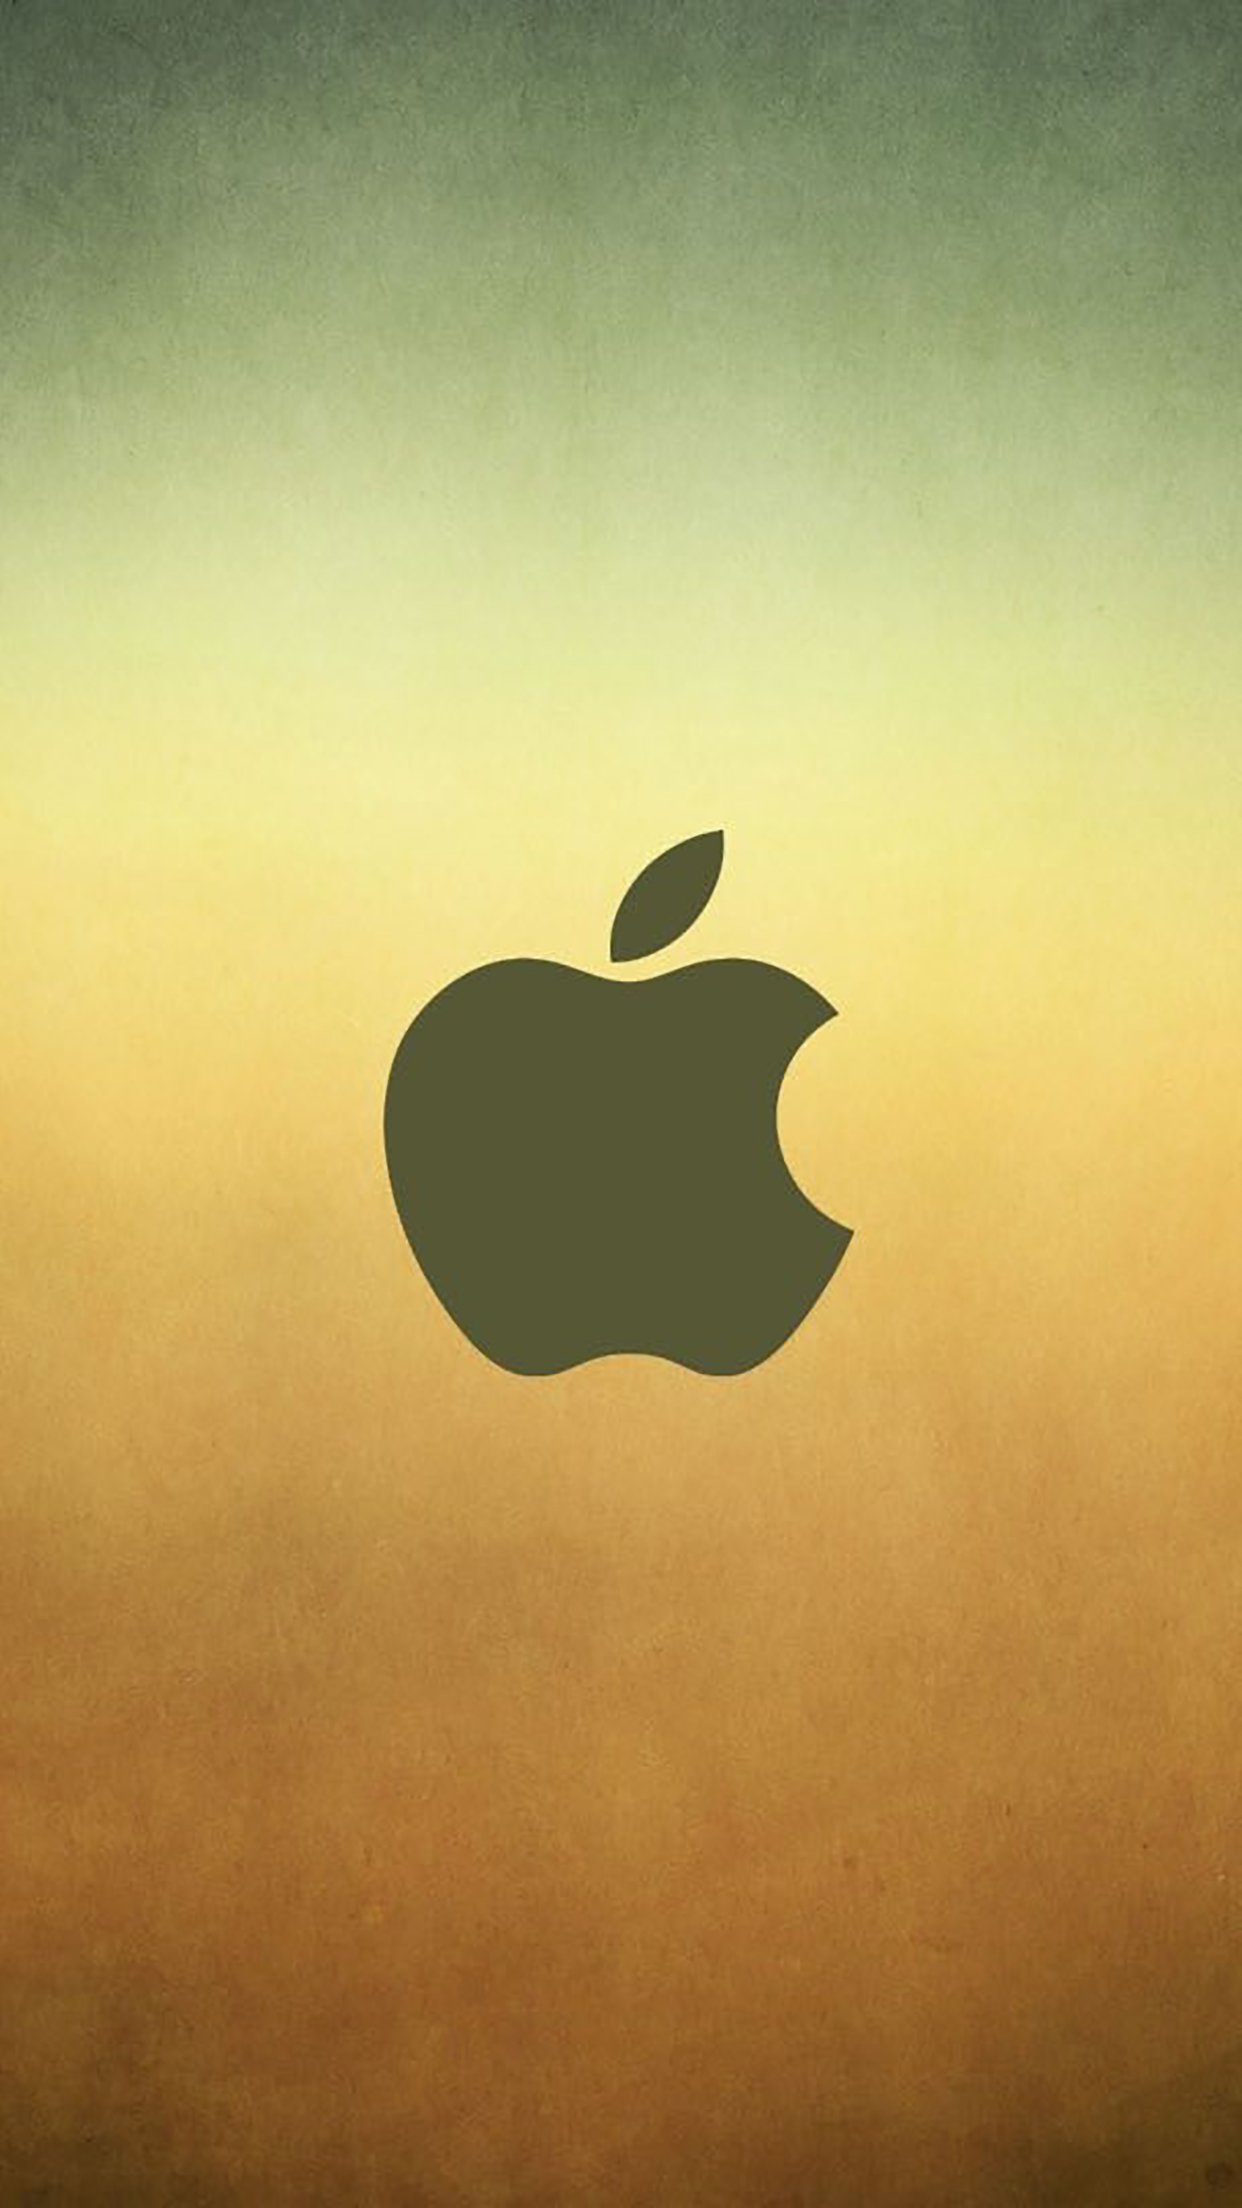 Simple Girl Wallpapers 2010 Apple Logo Simple Wallpaper For Iphone X 8 7 6 Free